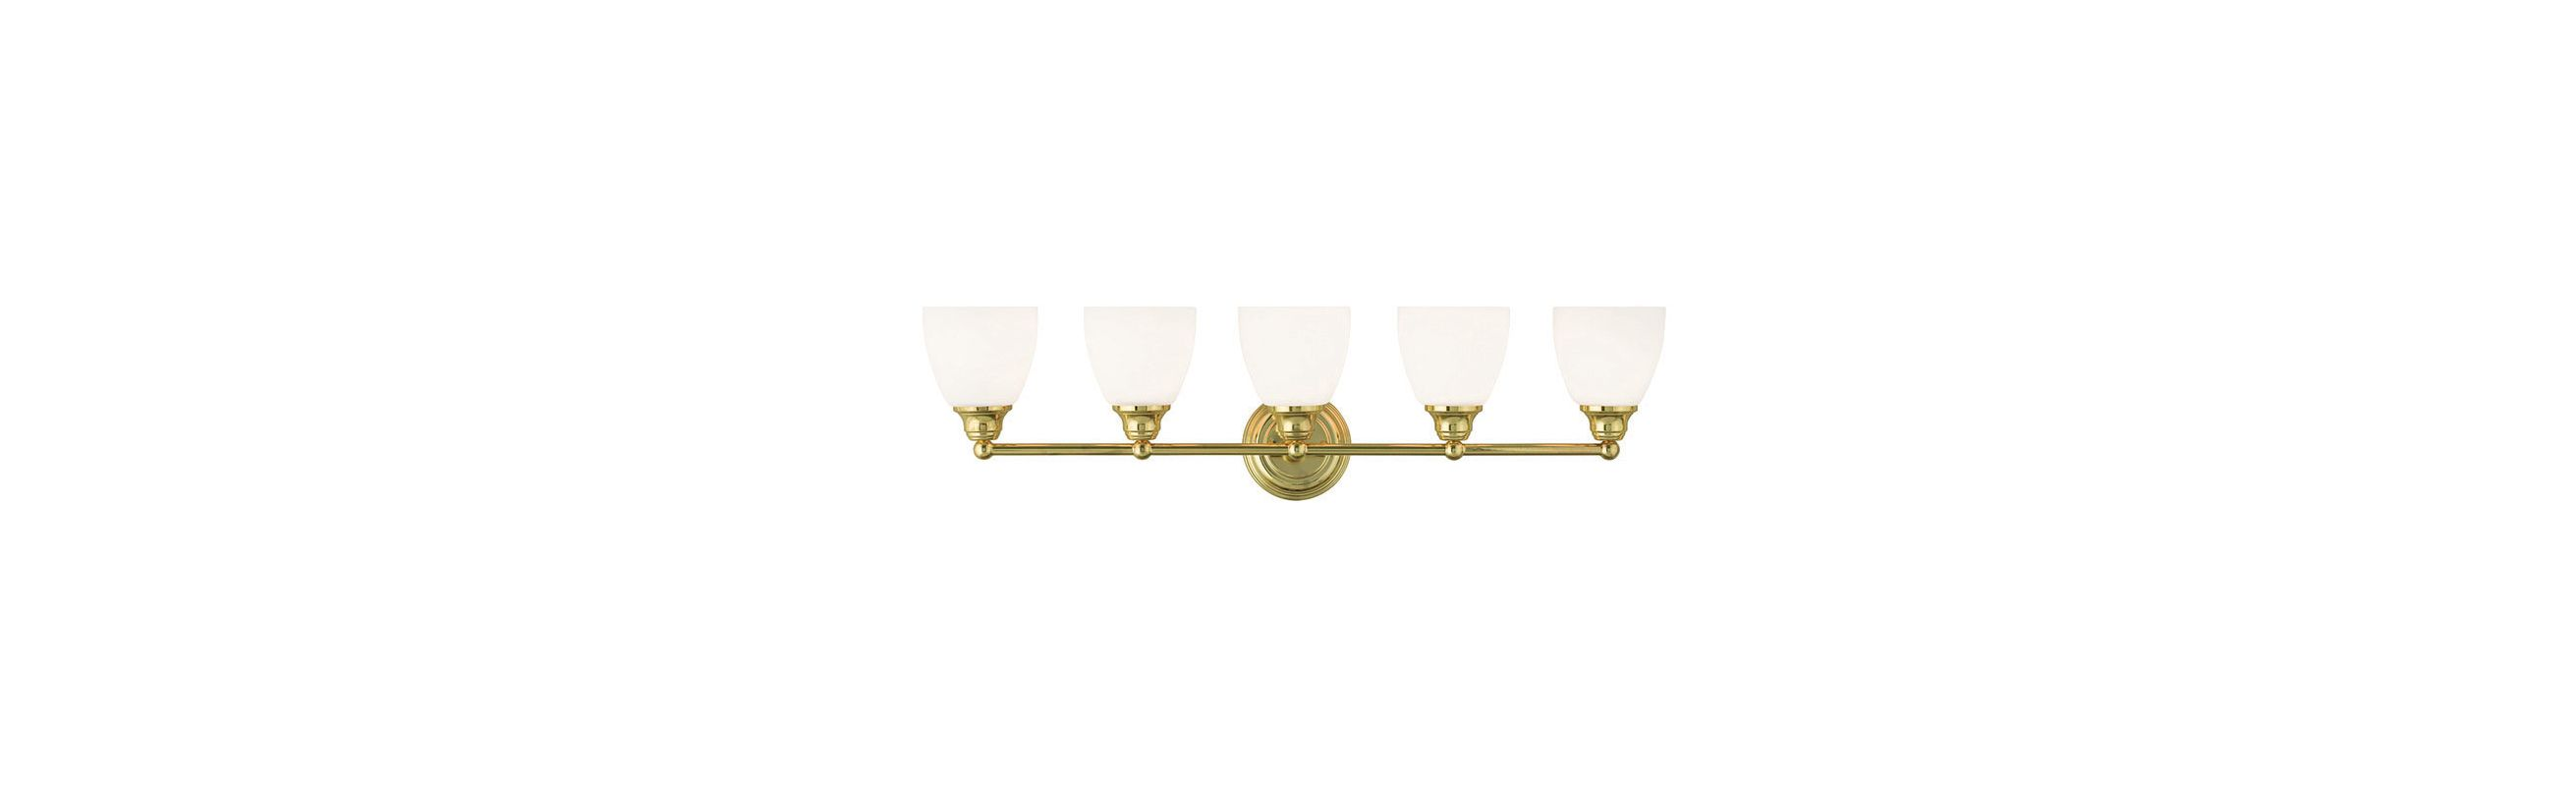 Livex Lighting 13665 Somerville 5 Light Bathroom Vanity Light Polished